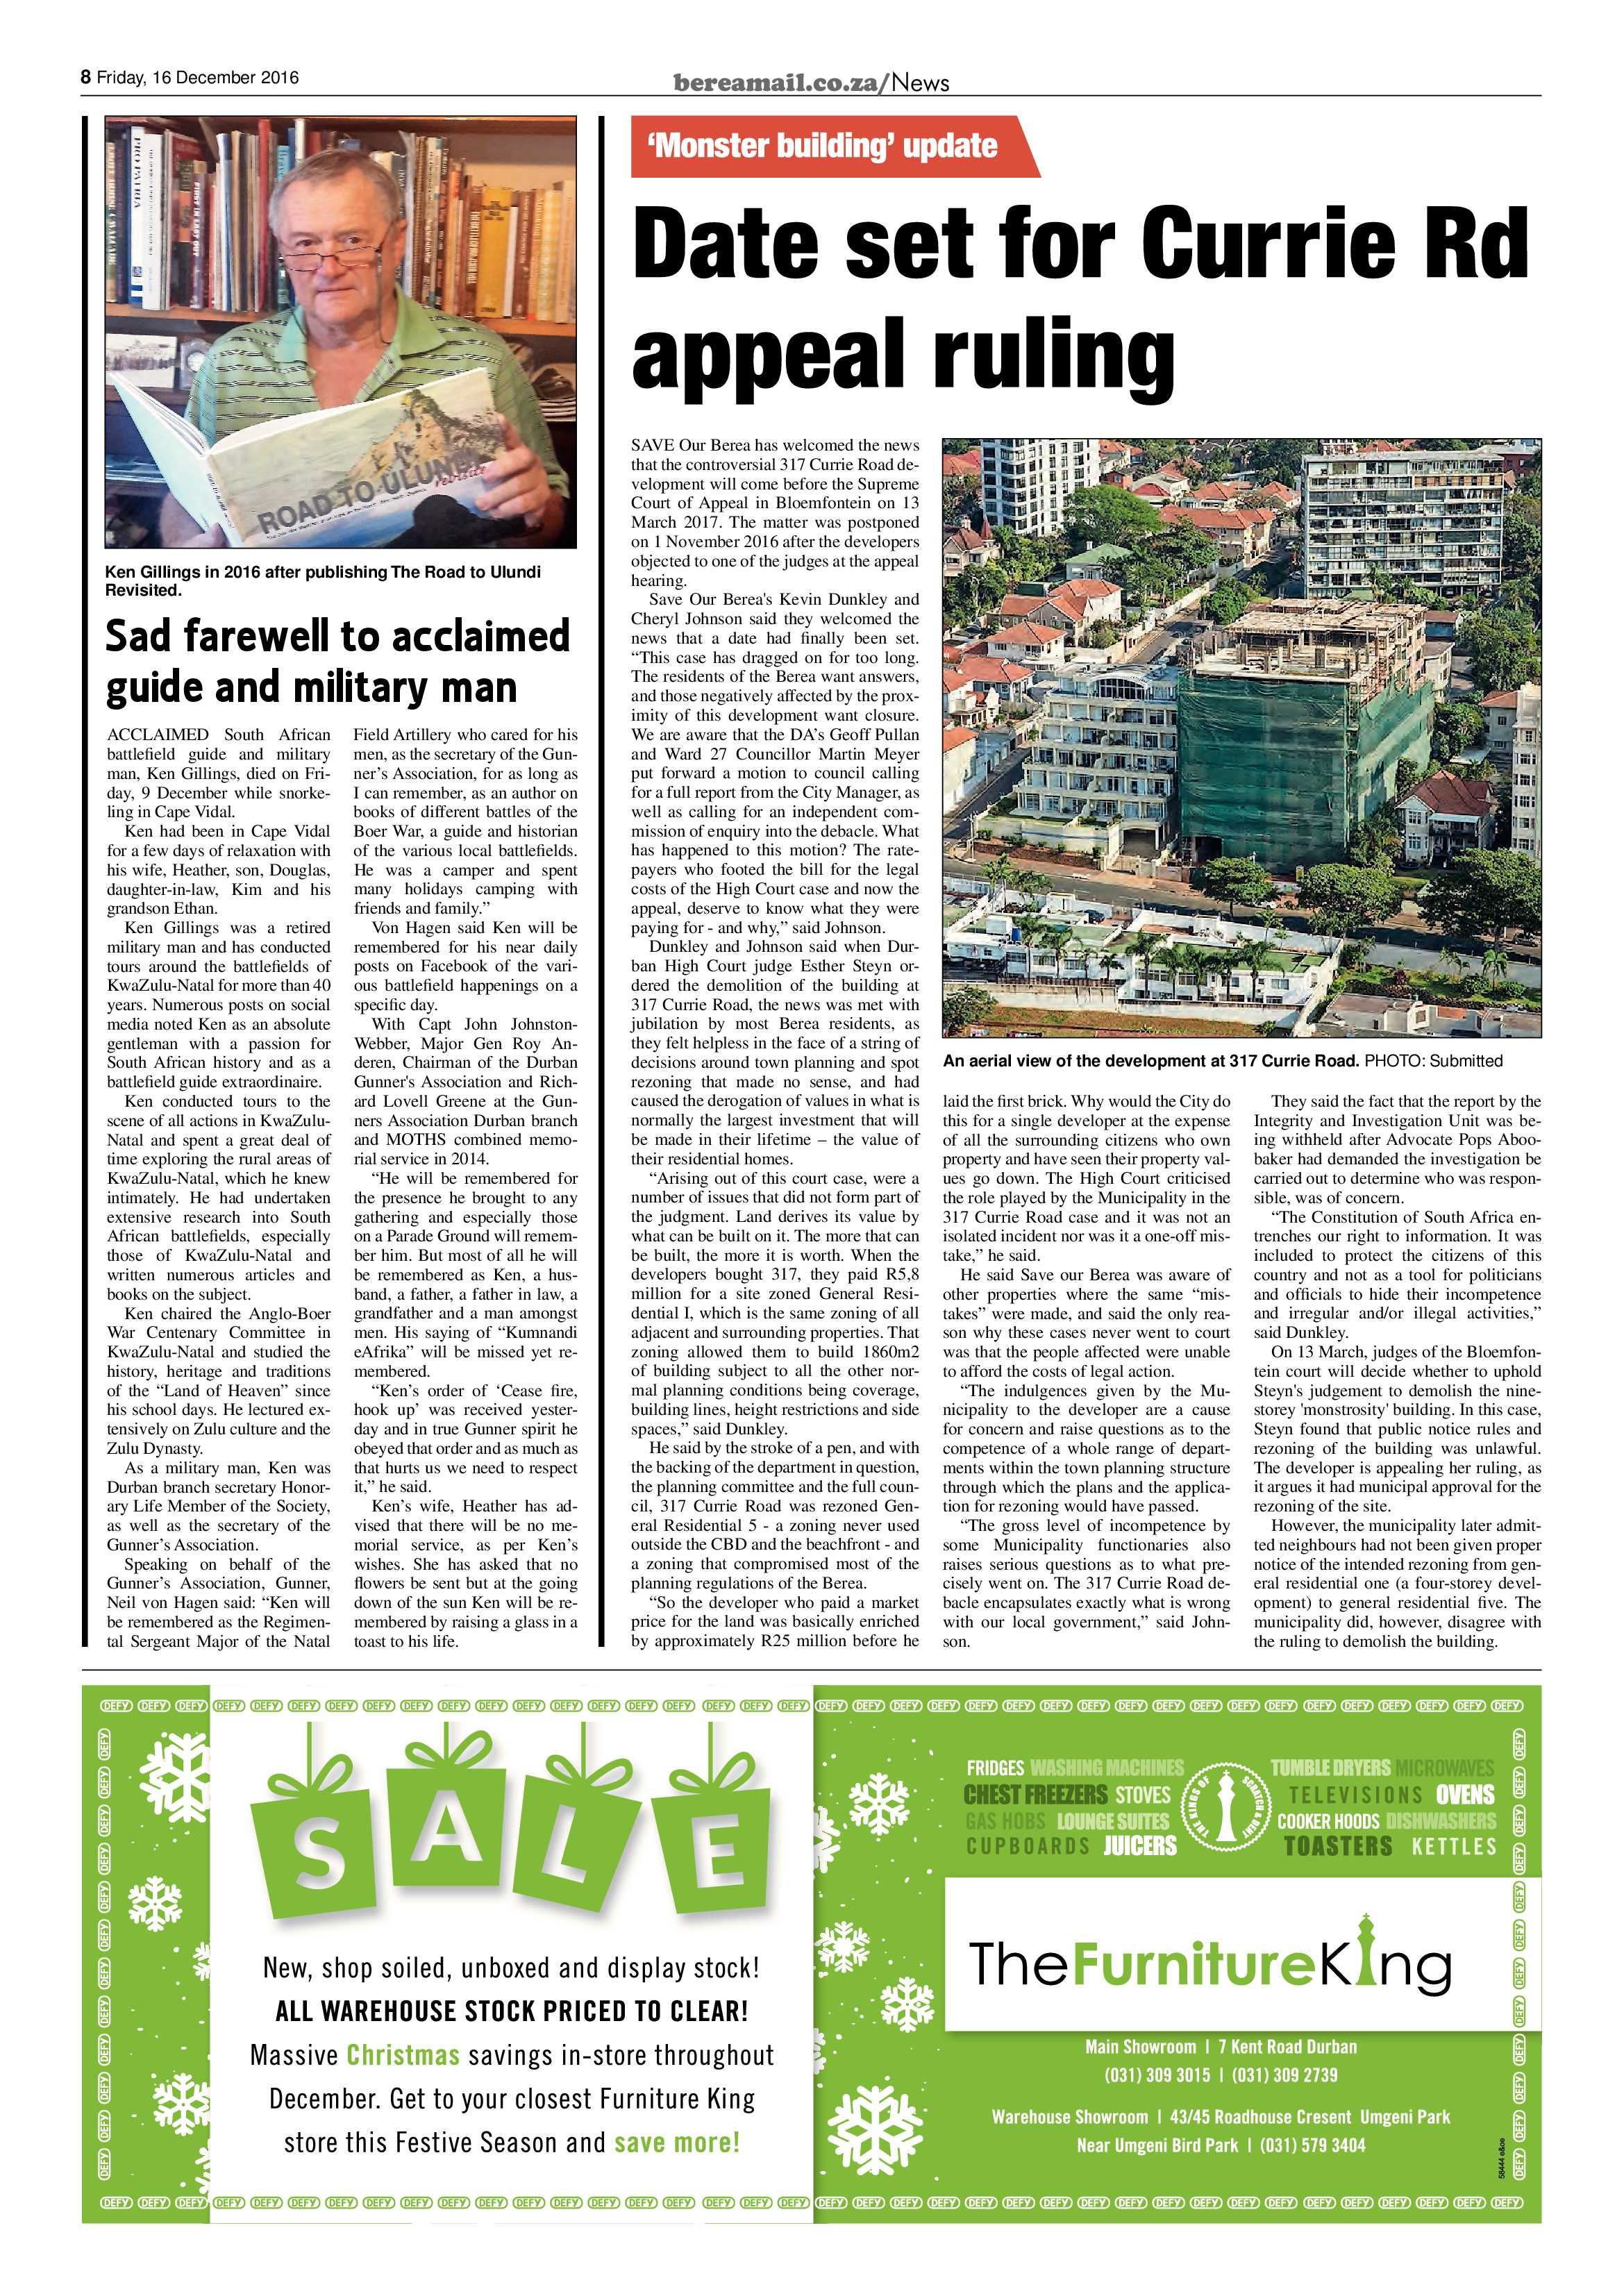 berea-mail-16-december-2016-epapers-page-8